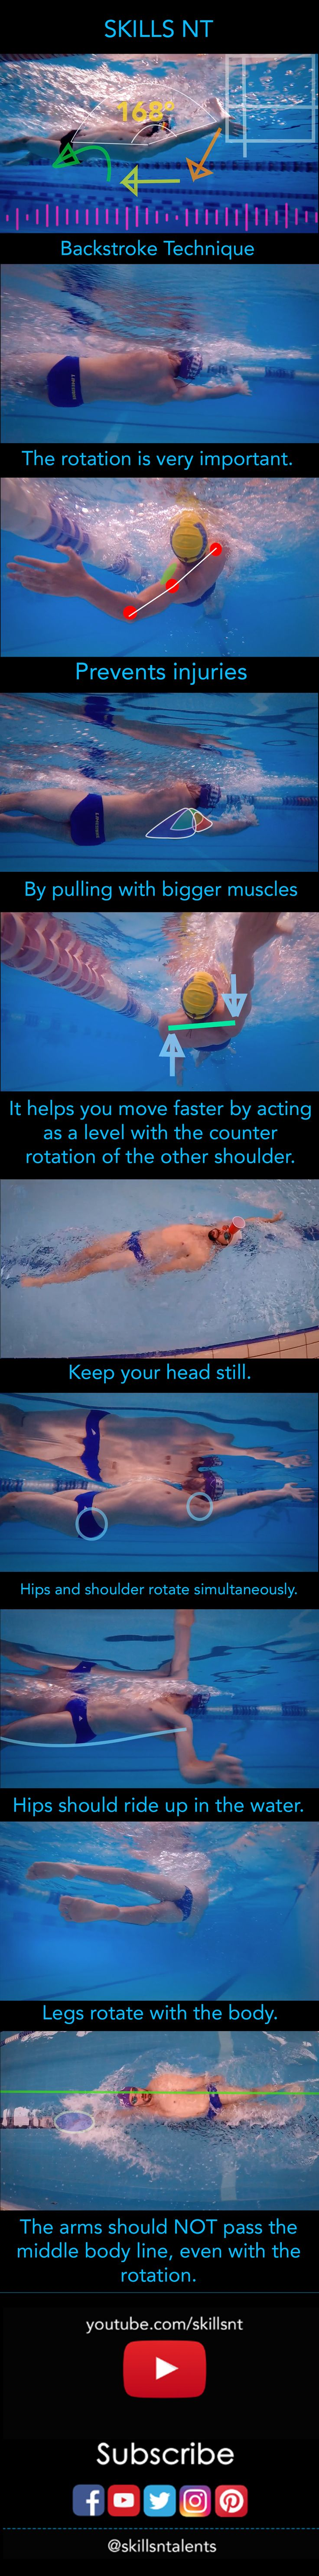 Backtroke swimming technique